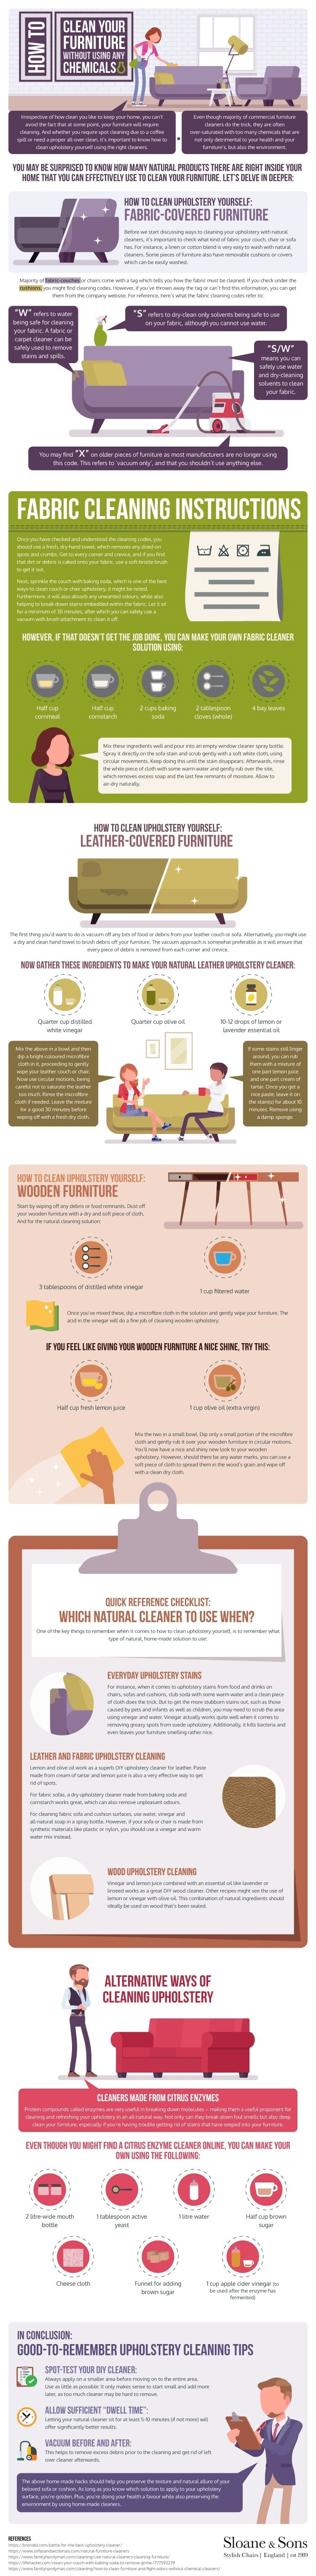 How To Clean Your Furniture Without Any Chemicals